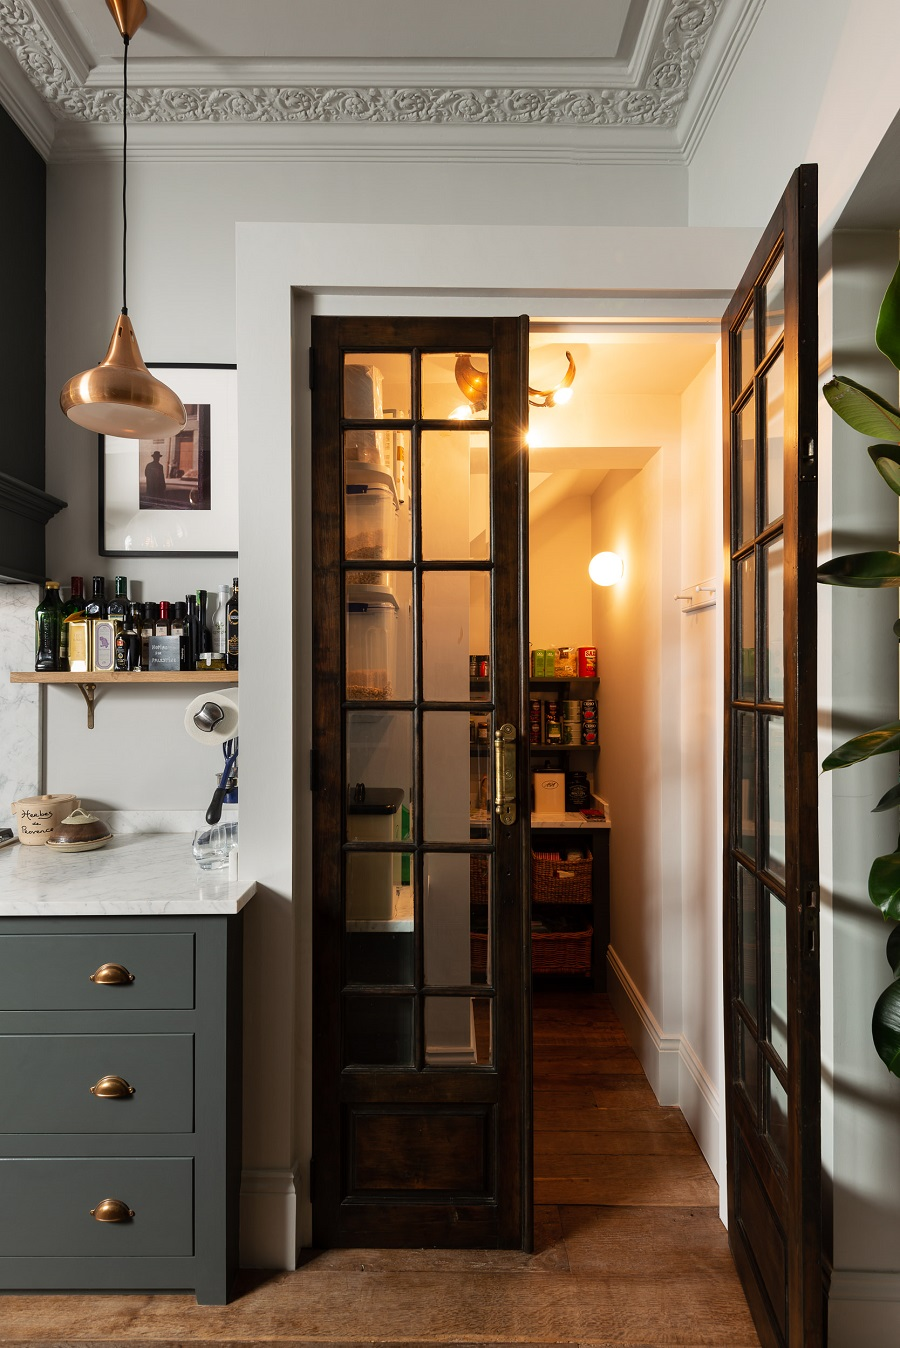 An Islington Townhouse Kitchen - A Working Family Kitchen with Soul